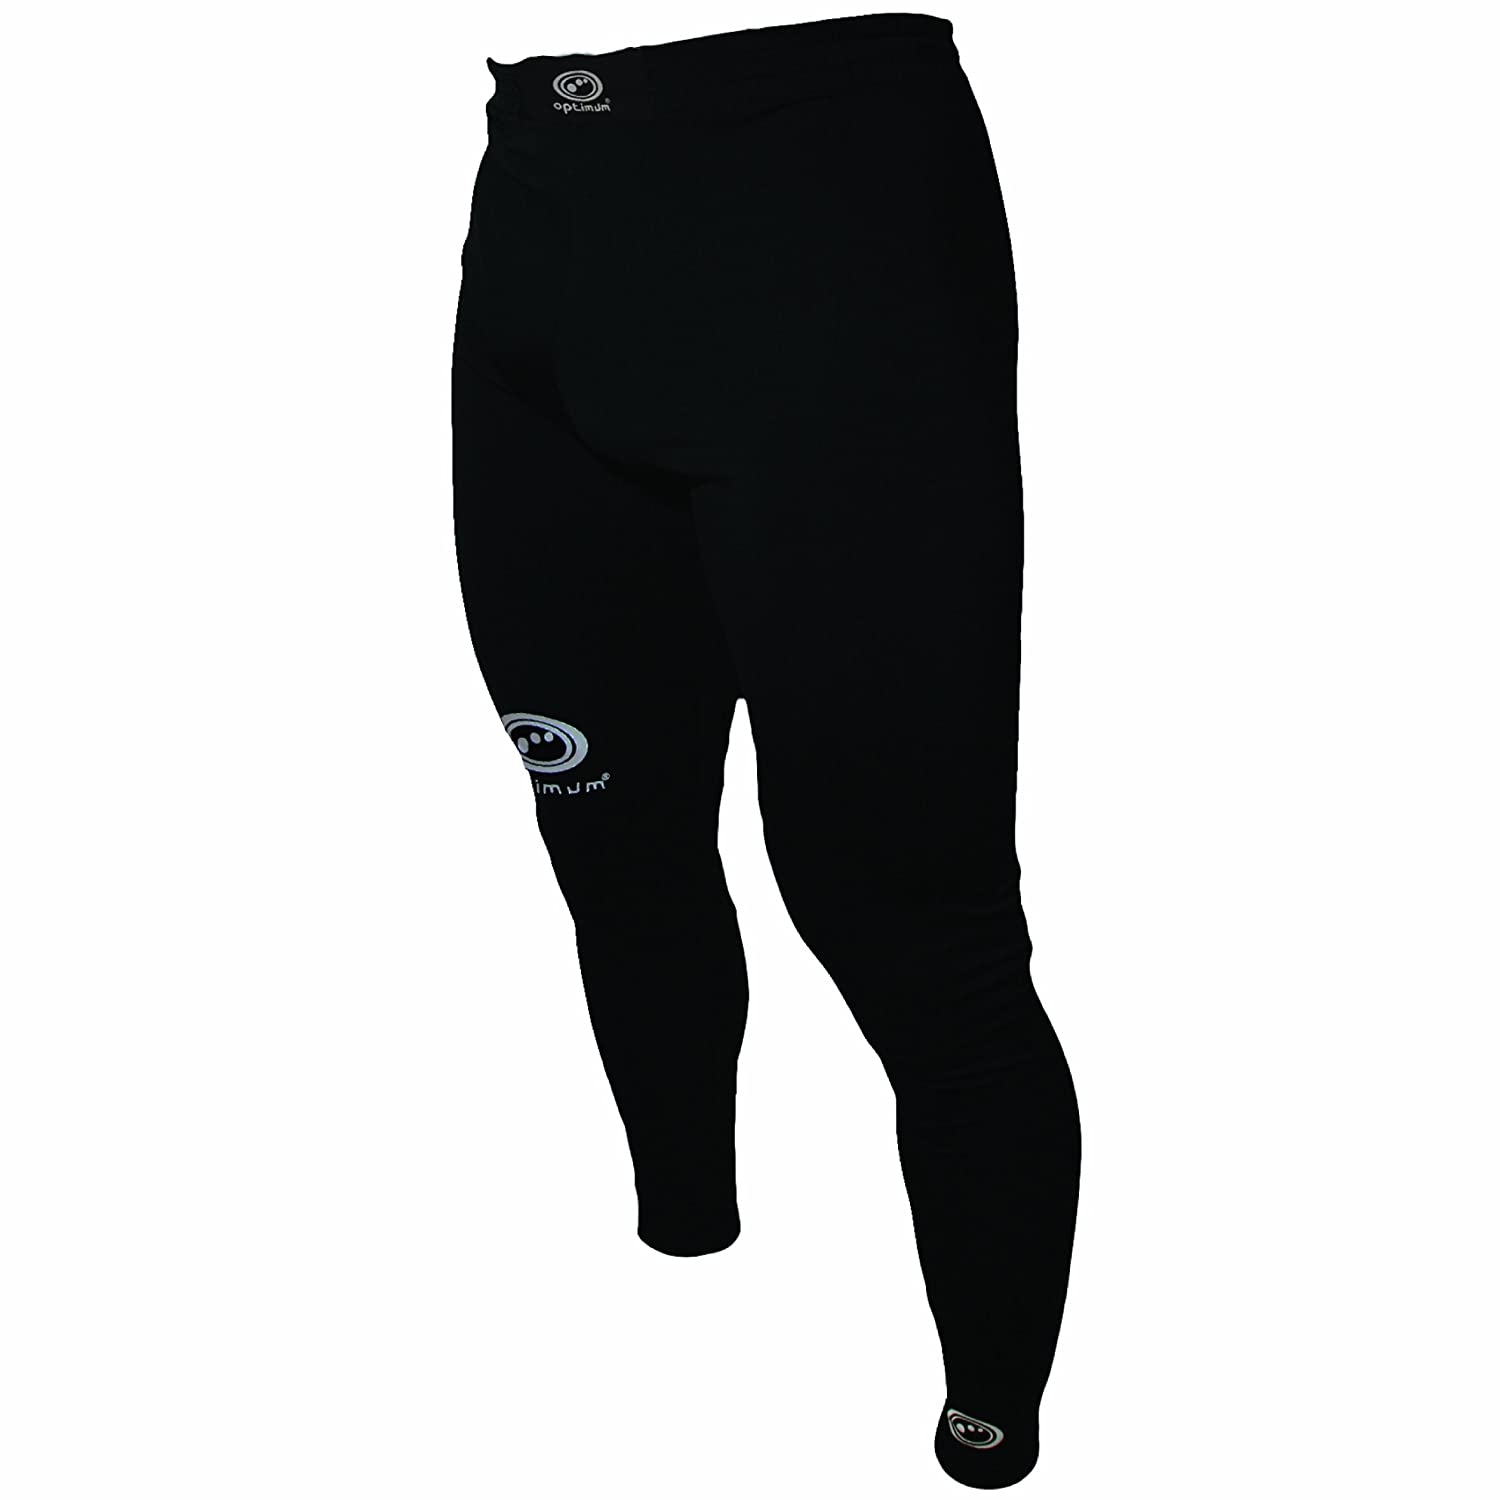 Optimum Unisex Junior Thinskin Longs Rugby Leggings